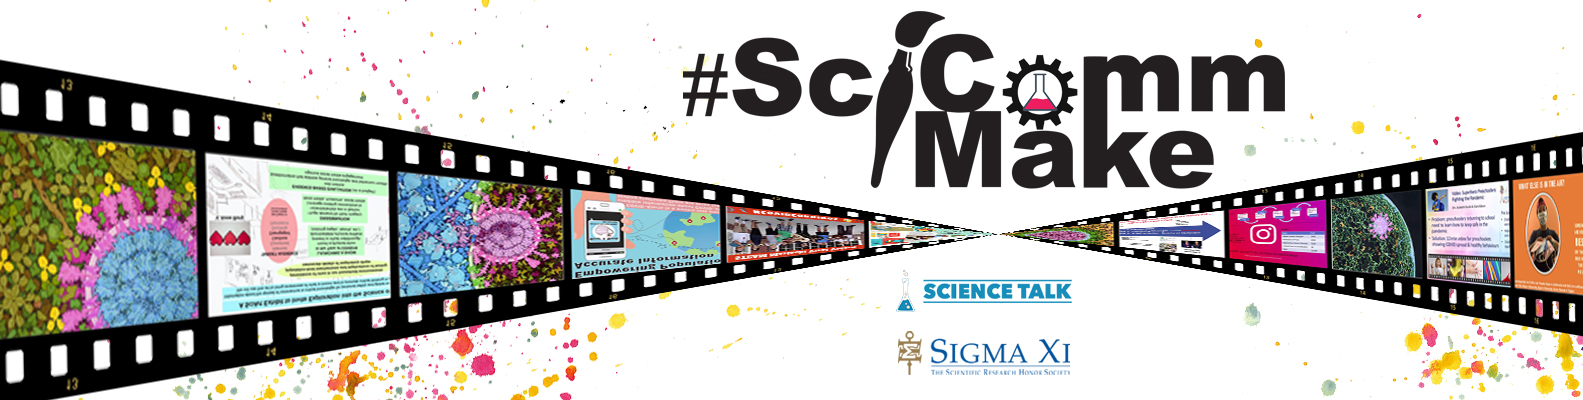 SciCommMake_page_header_w_logos